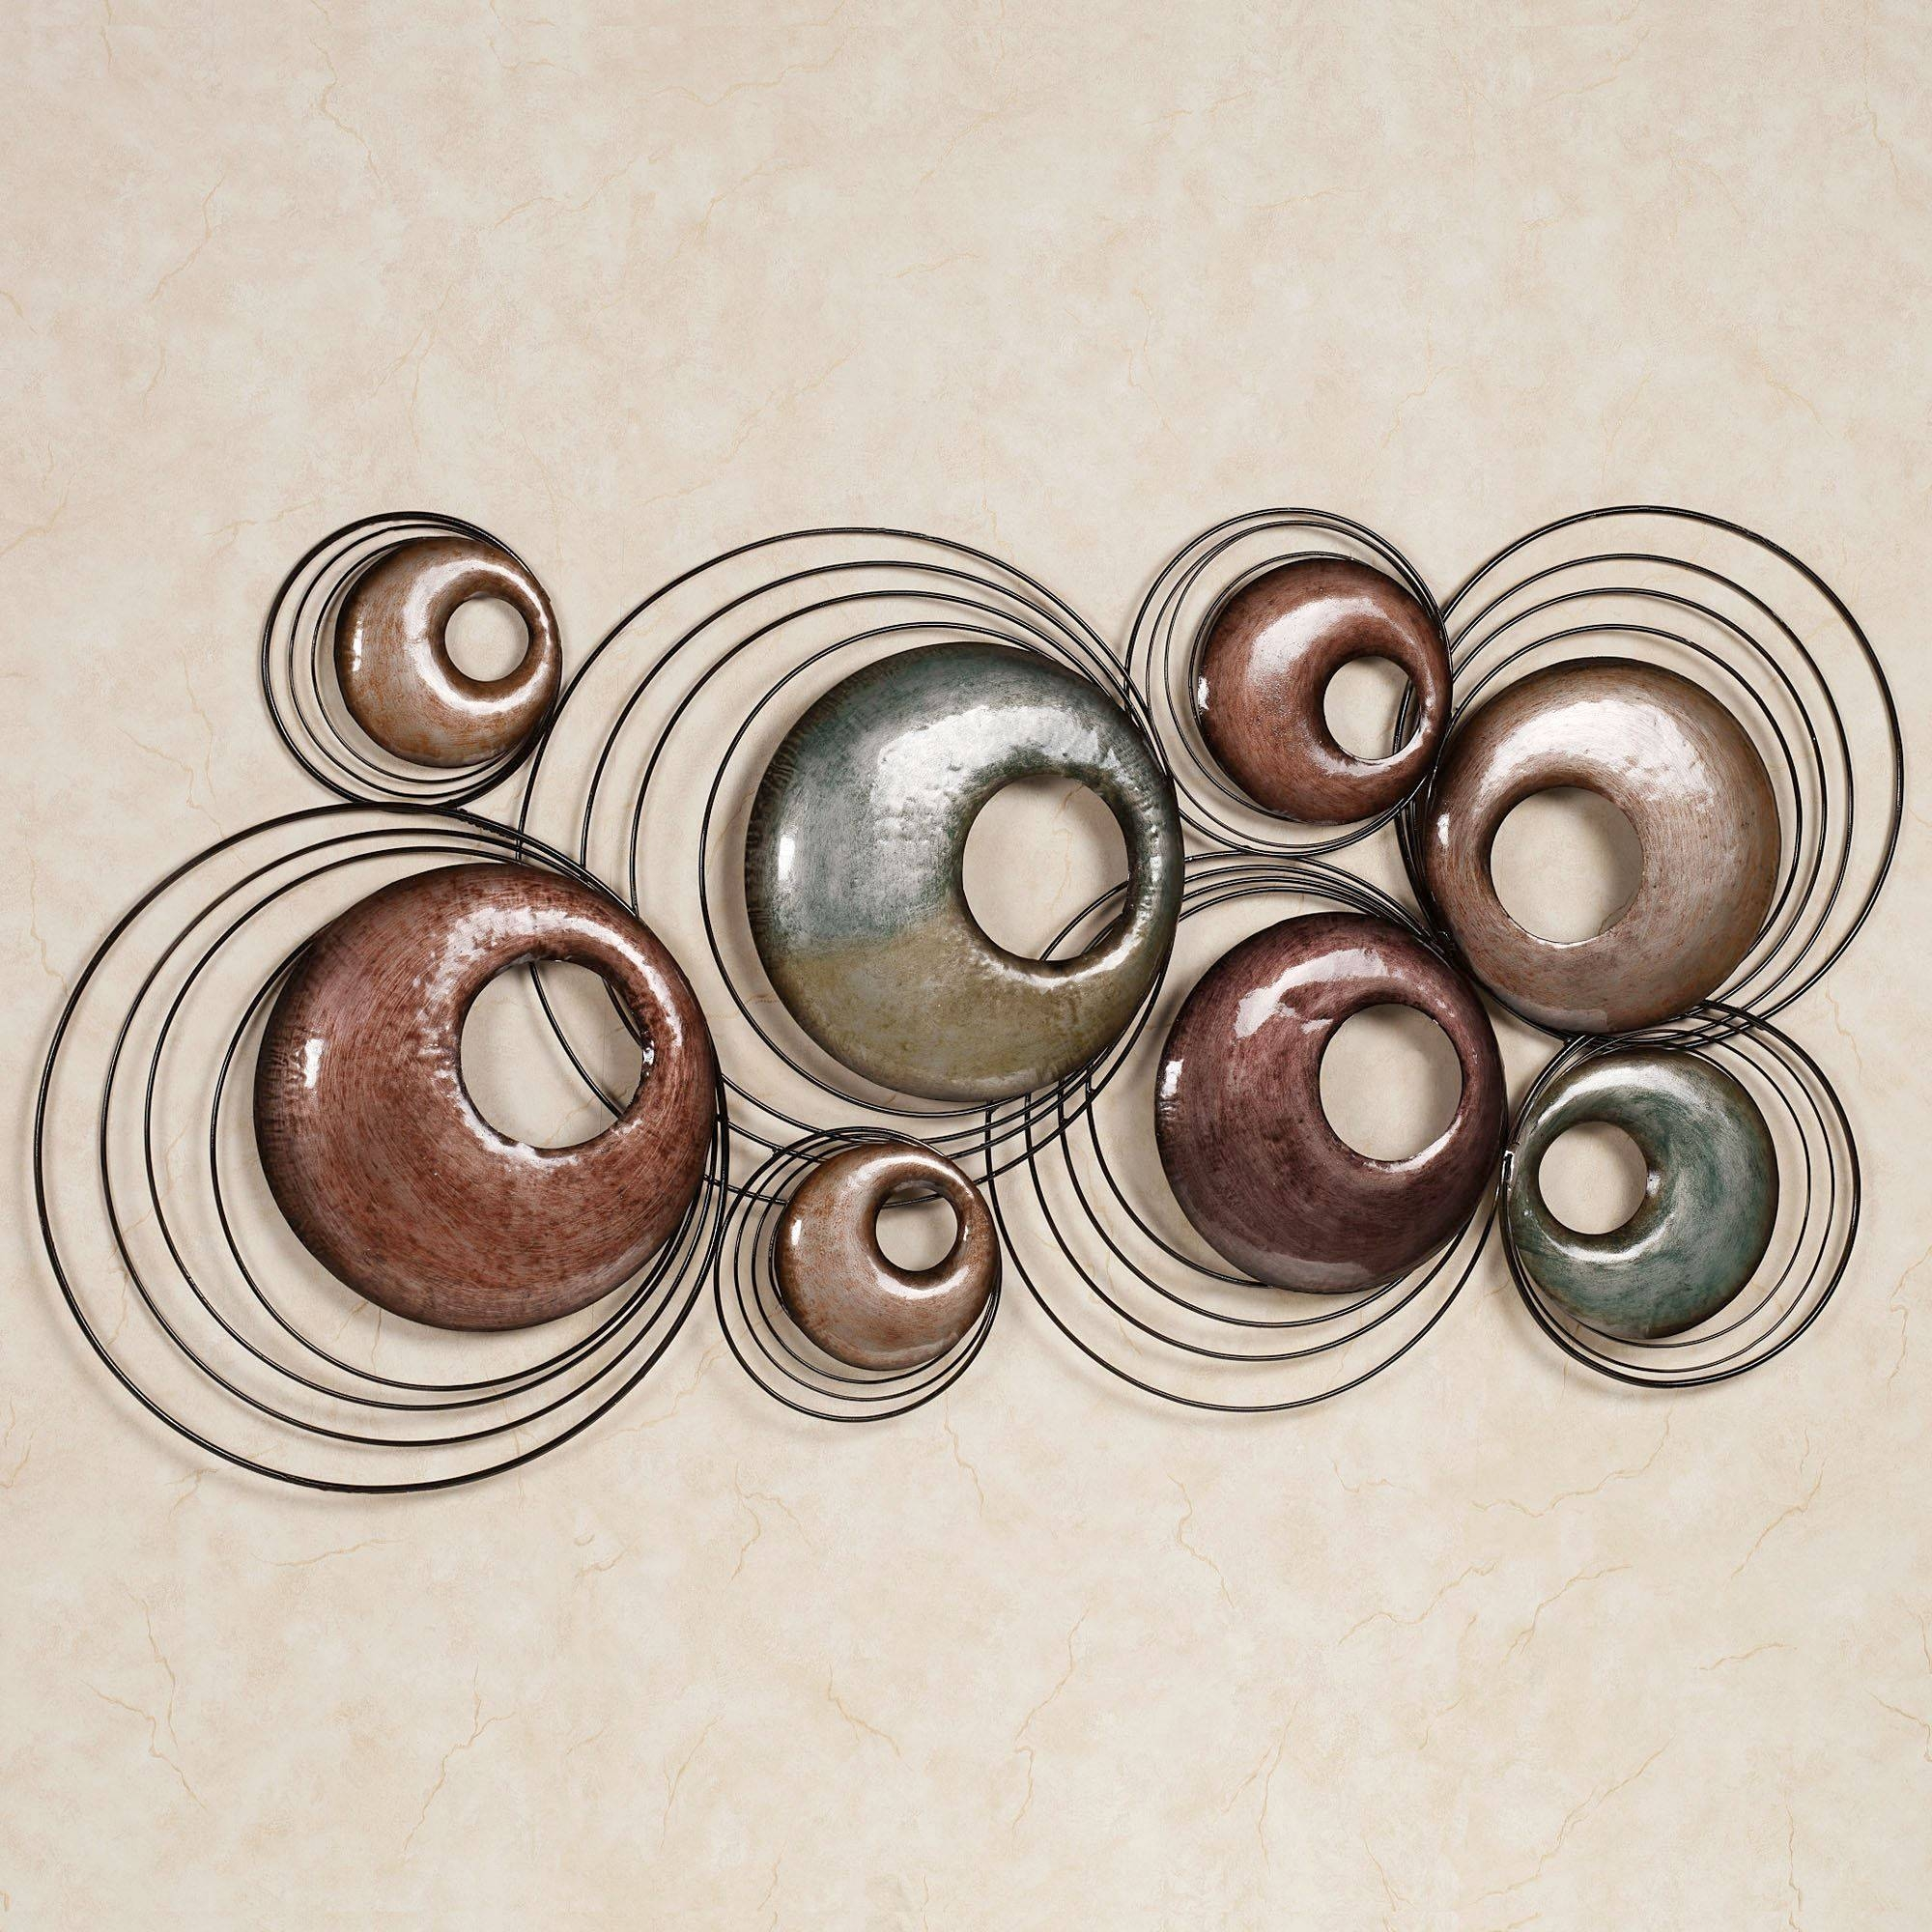 Echo Metal Wall Sculpture Art Pertaining To Most Recently Released Cool Metal Wall Art (Gallery 4 of 20)